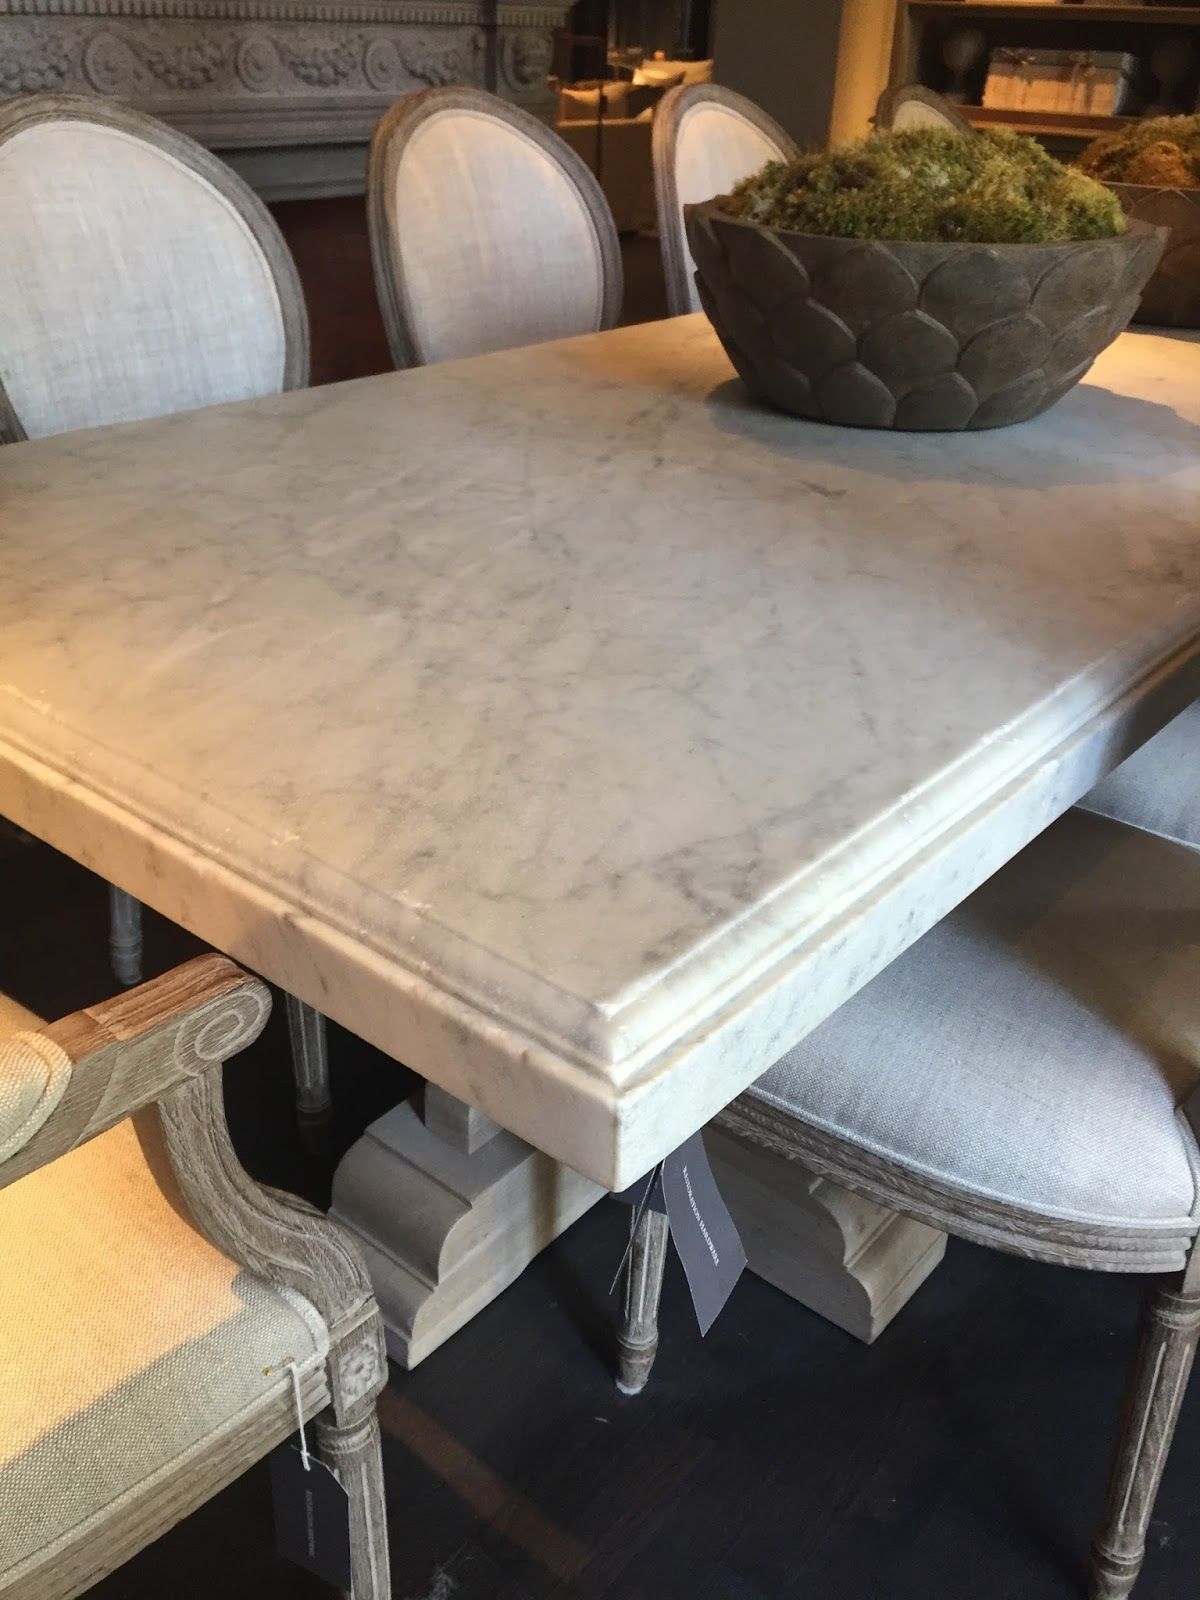 What A Treat For The Eyes It Is So Refreshing To See A Retailer Take Ri Dining Table Marble Restoration Hardware Dining Room Restoration Hardware Dining Table